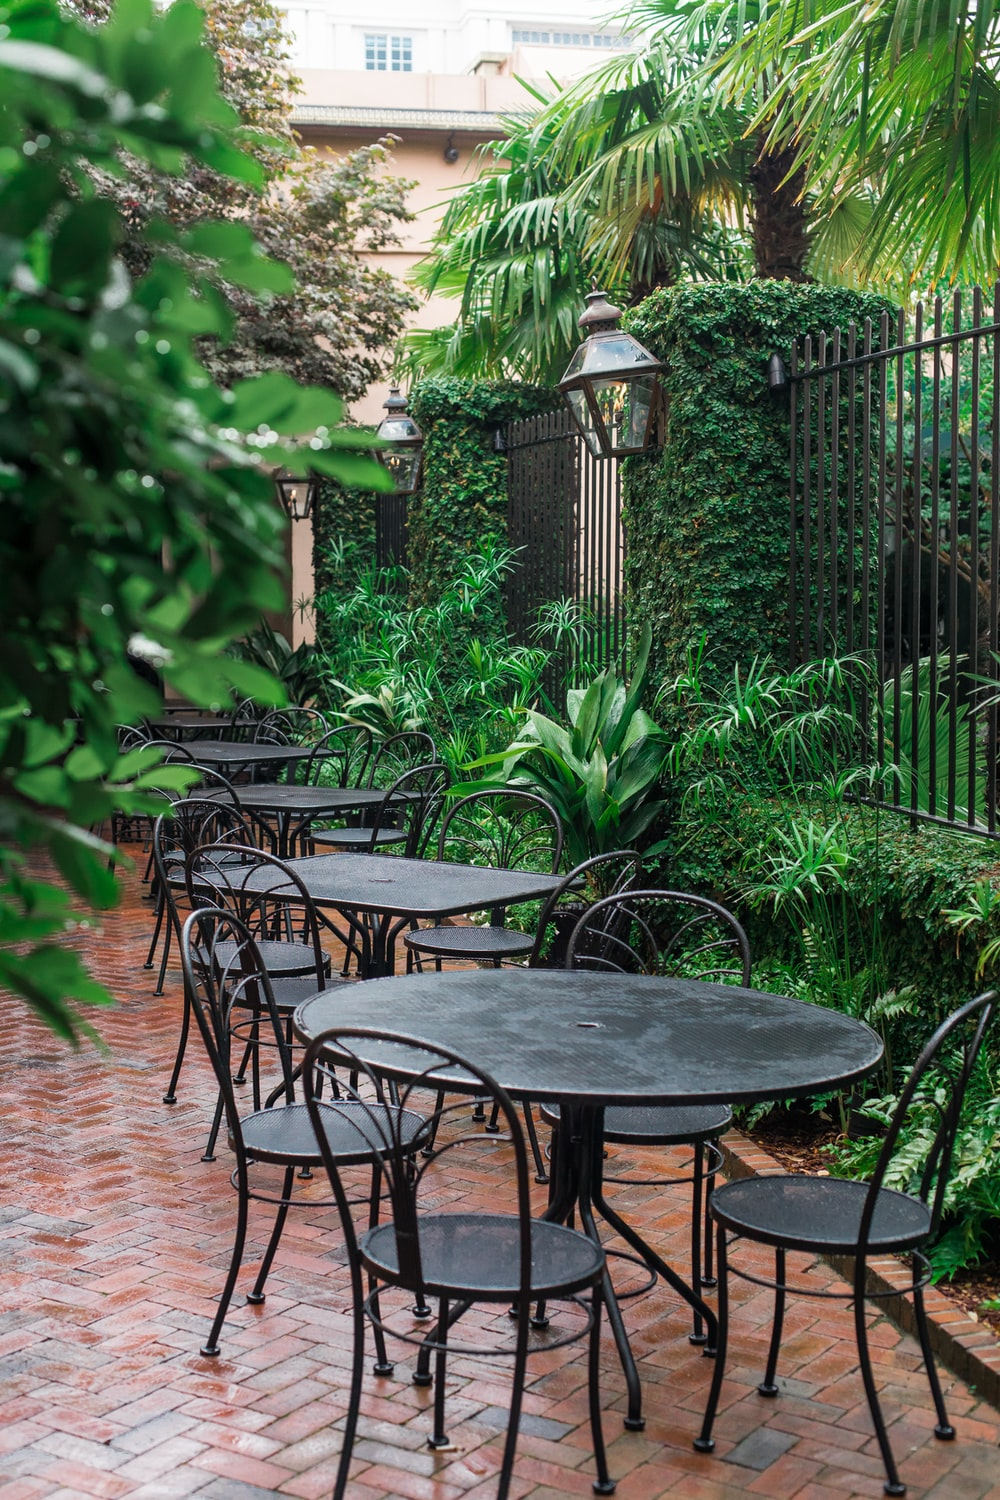 black metal patio tables near green plants during daytime